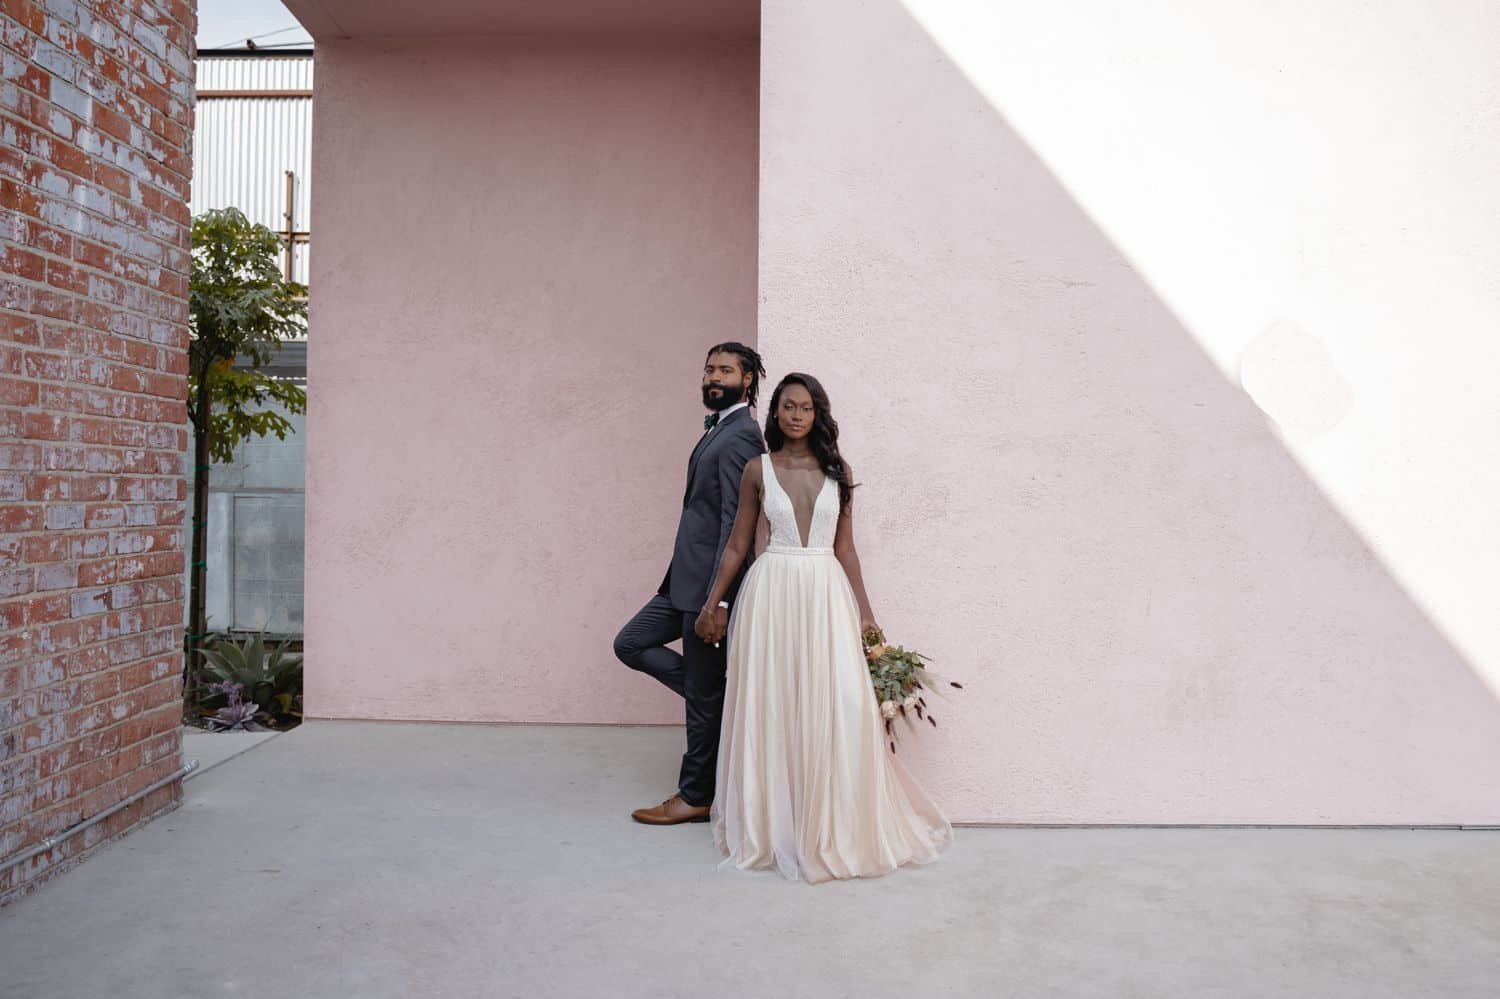 A Black bride and groom stand at the corner of a pink building beneath a slant of light.